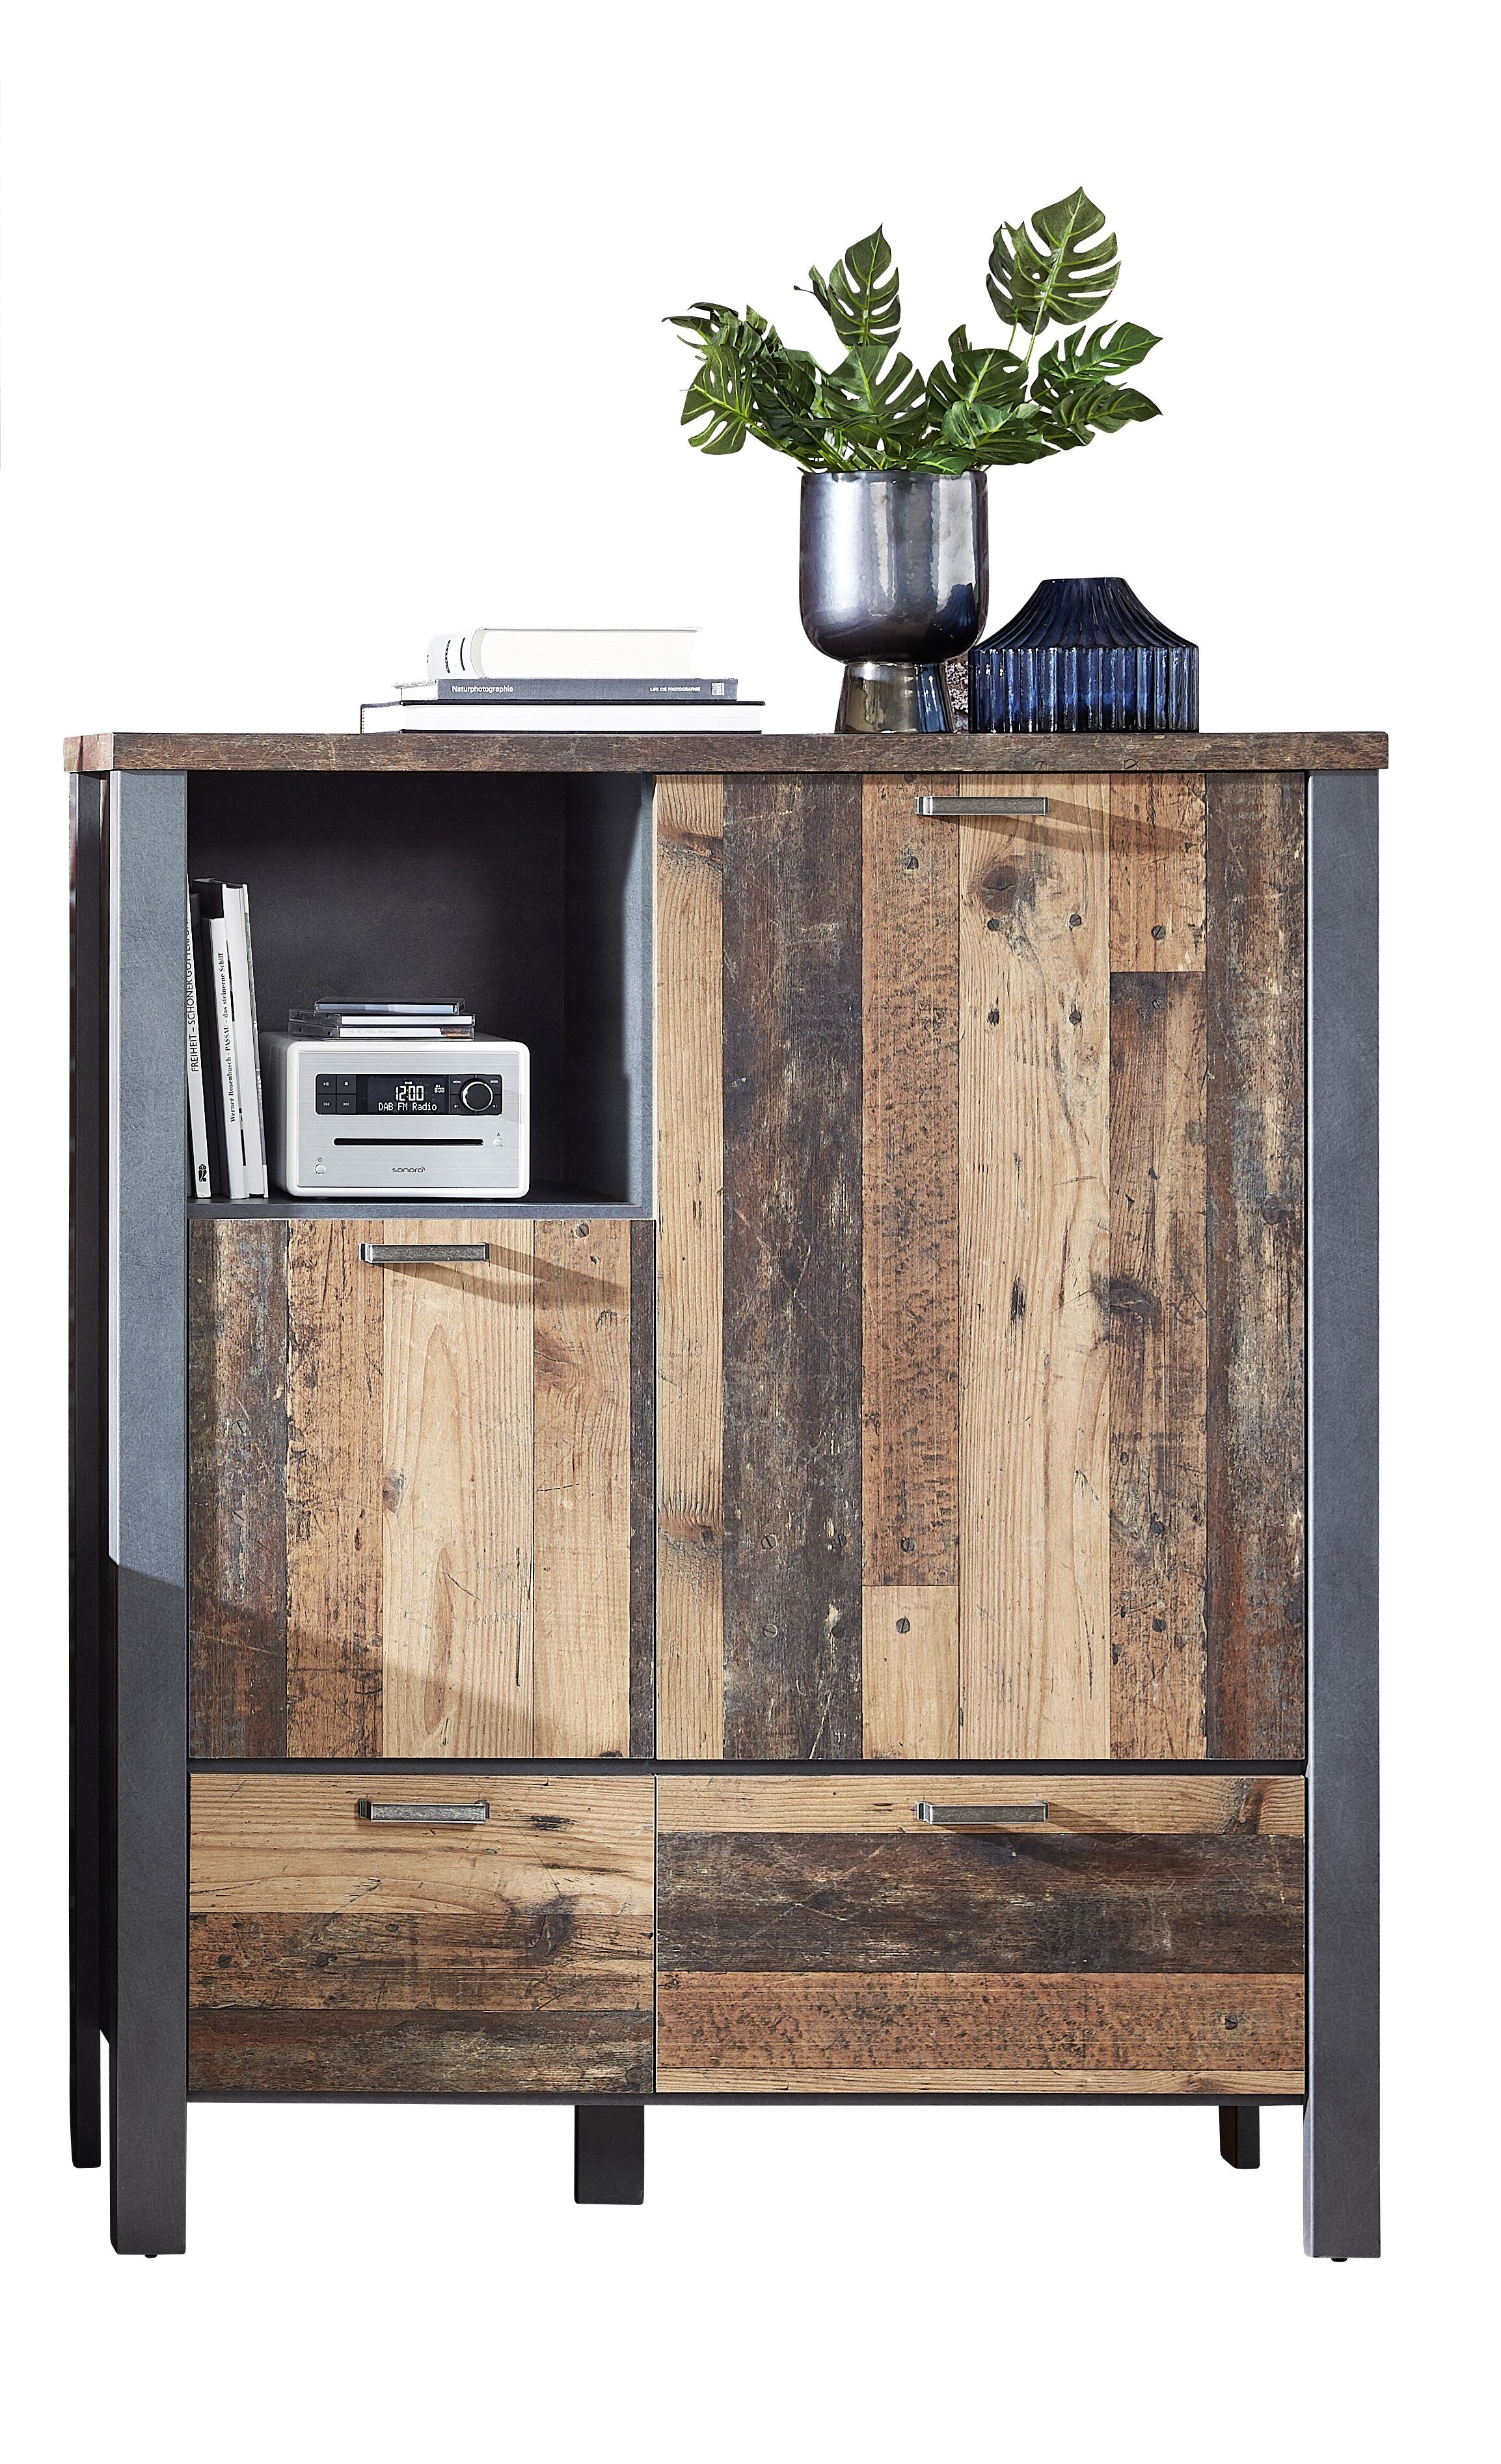 Cabinet din pal, cu 2 sertare si 2 usi Chelsea Natural / Grafit, l109xA40xH129 cm somproduct.ro